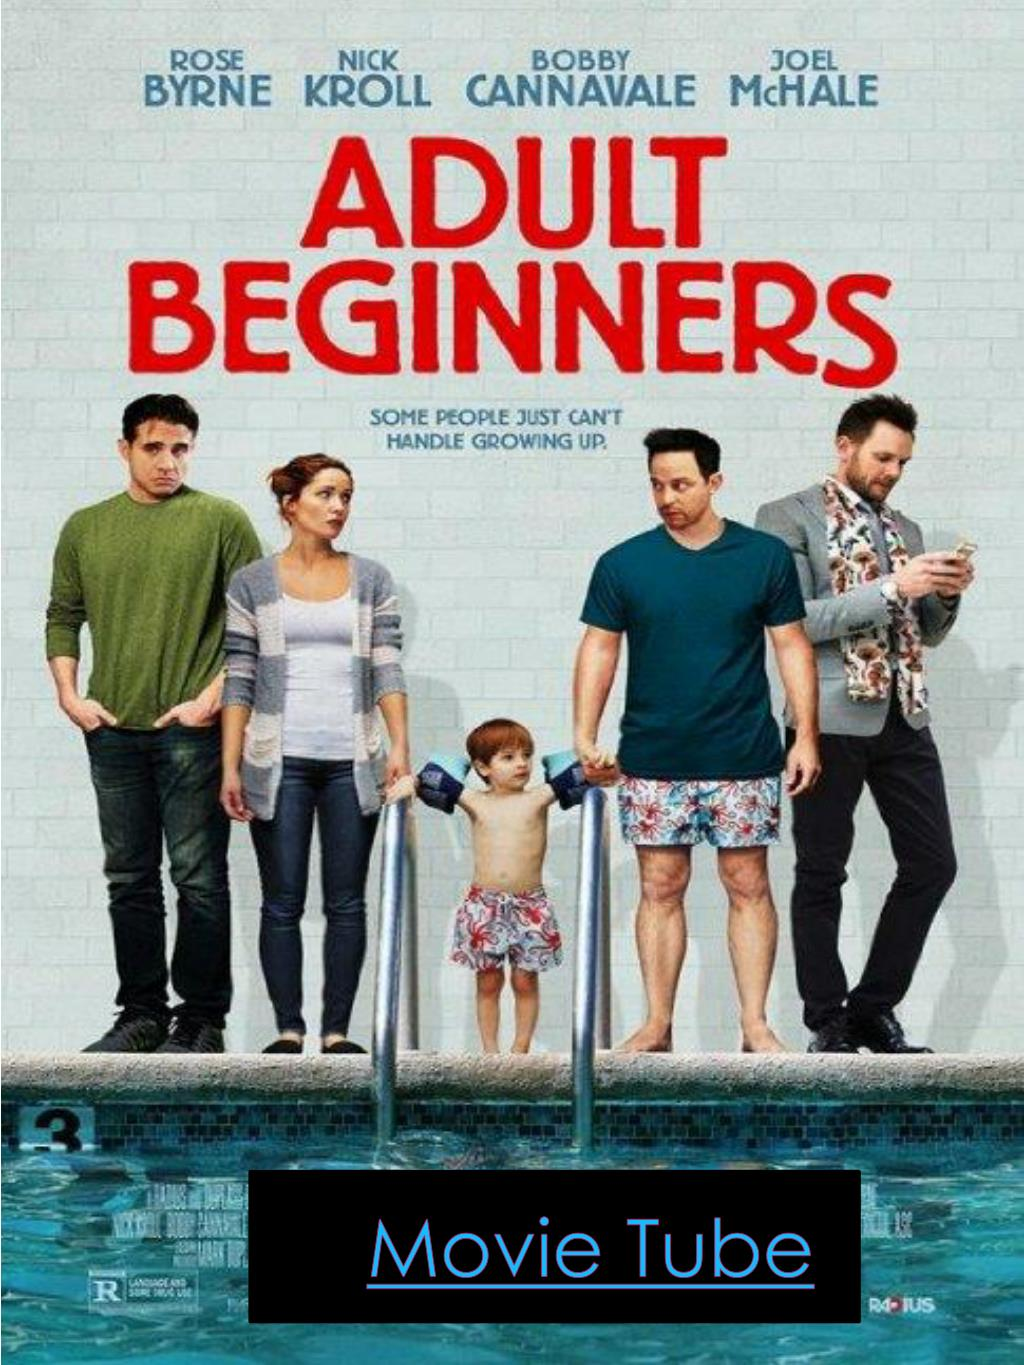 Adult Full Movie Tube ppt - movietube powerpoint presentation, free download - id